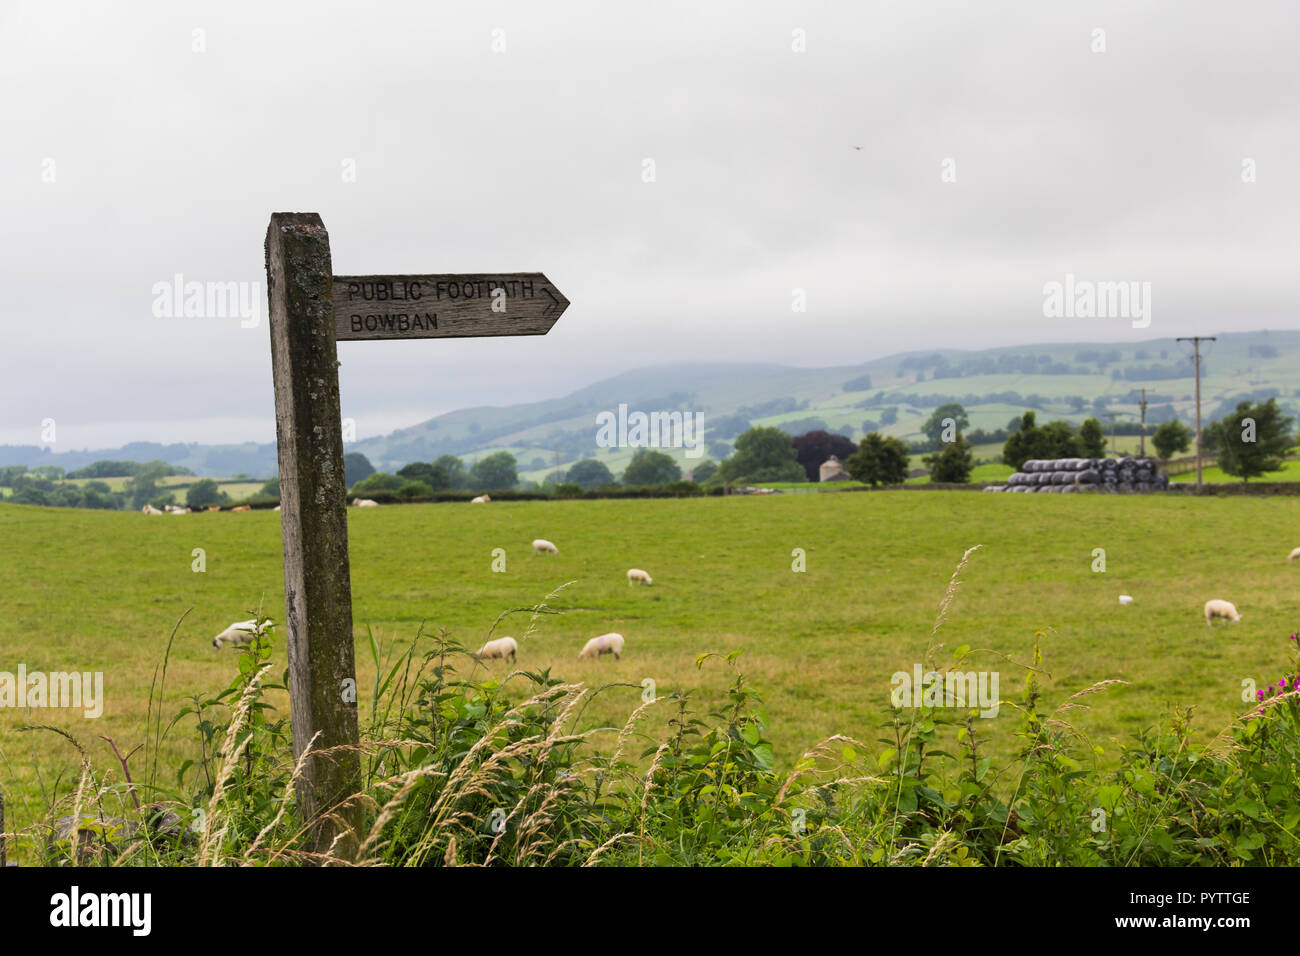 Public footpath sign leading off Shap Road, the A6 road, north-east of Kendal. The sign is labelled Bowban in error, it should read Bowbank. - Stock Image